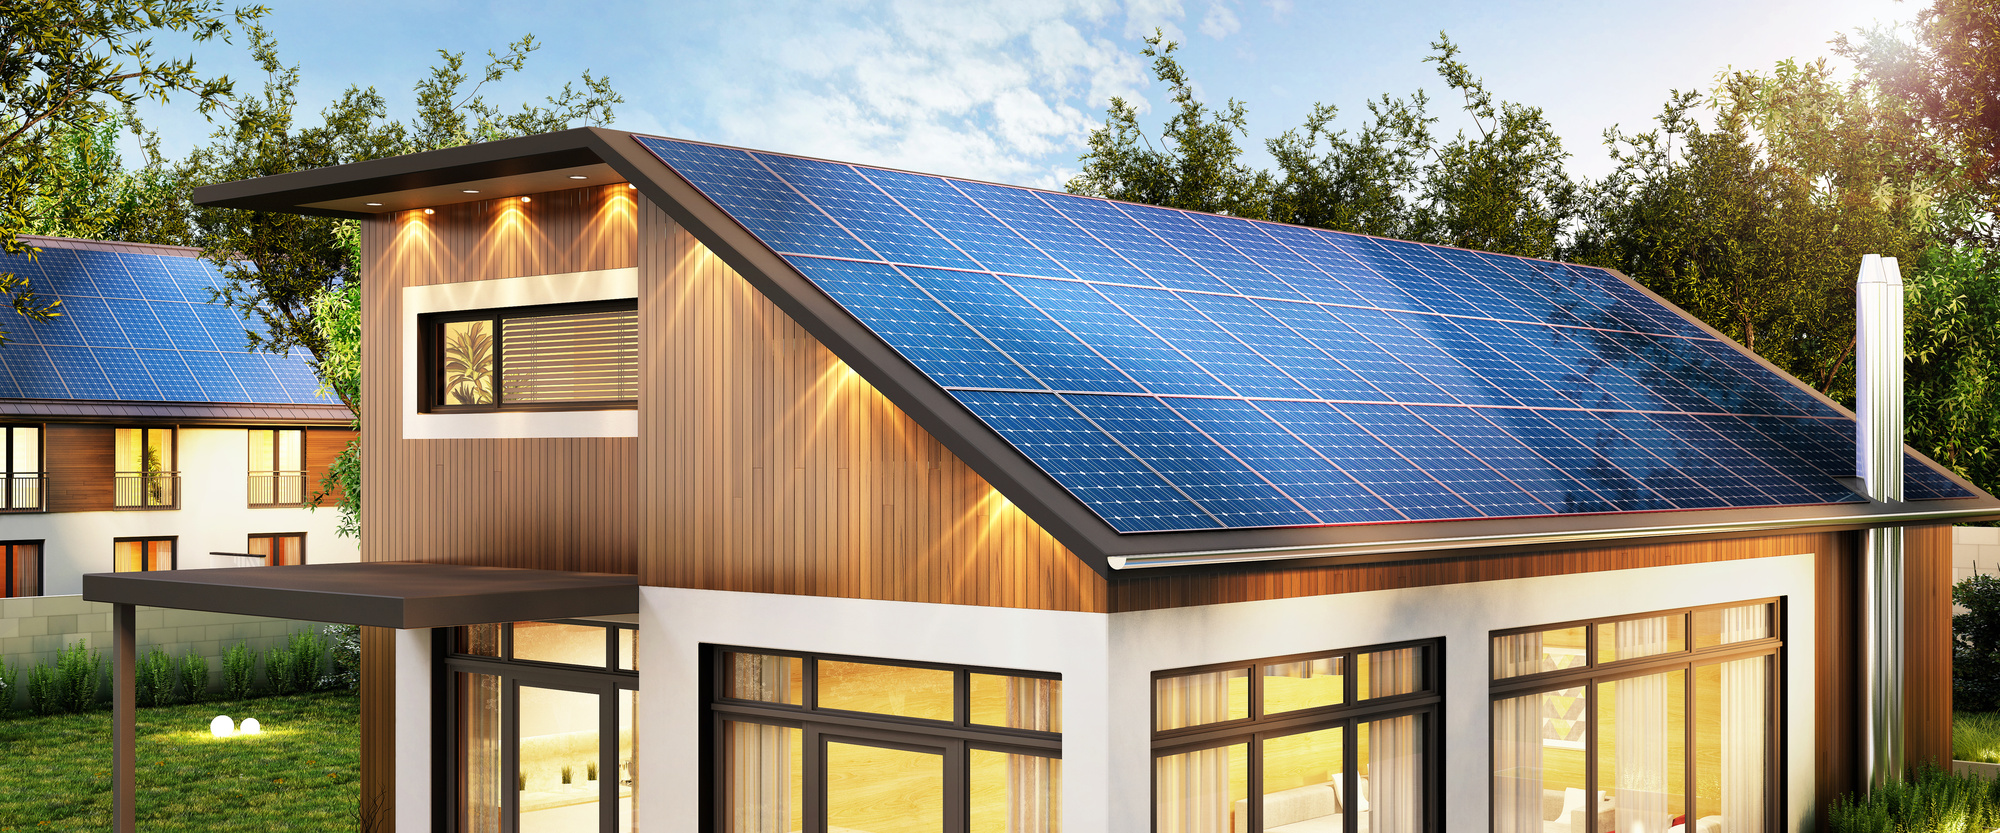 A Guide to Texas Solar Rebates and Incentives for 2021